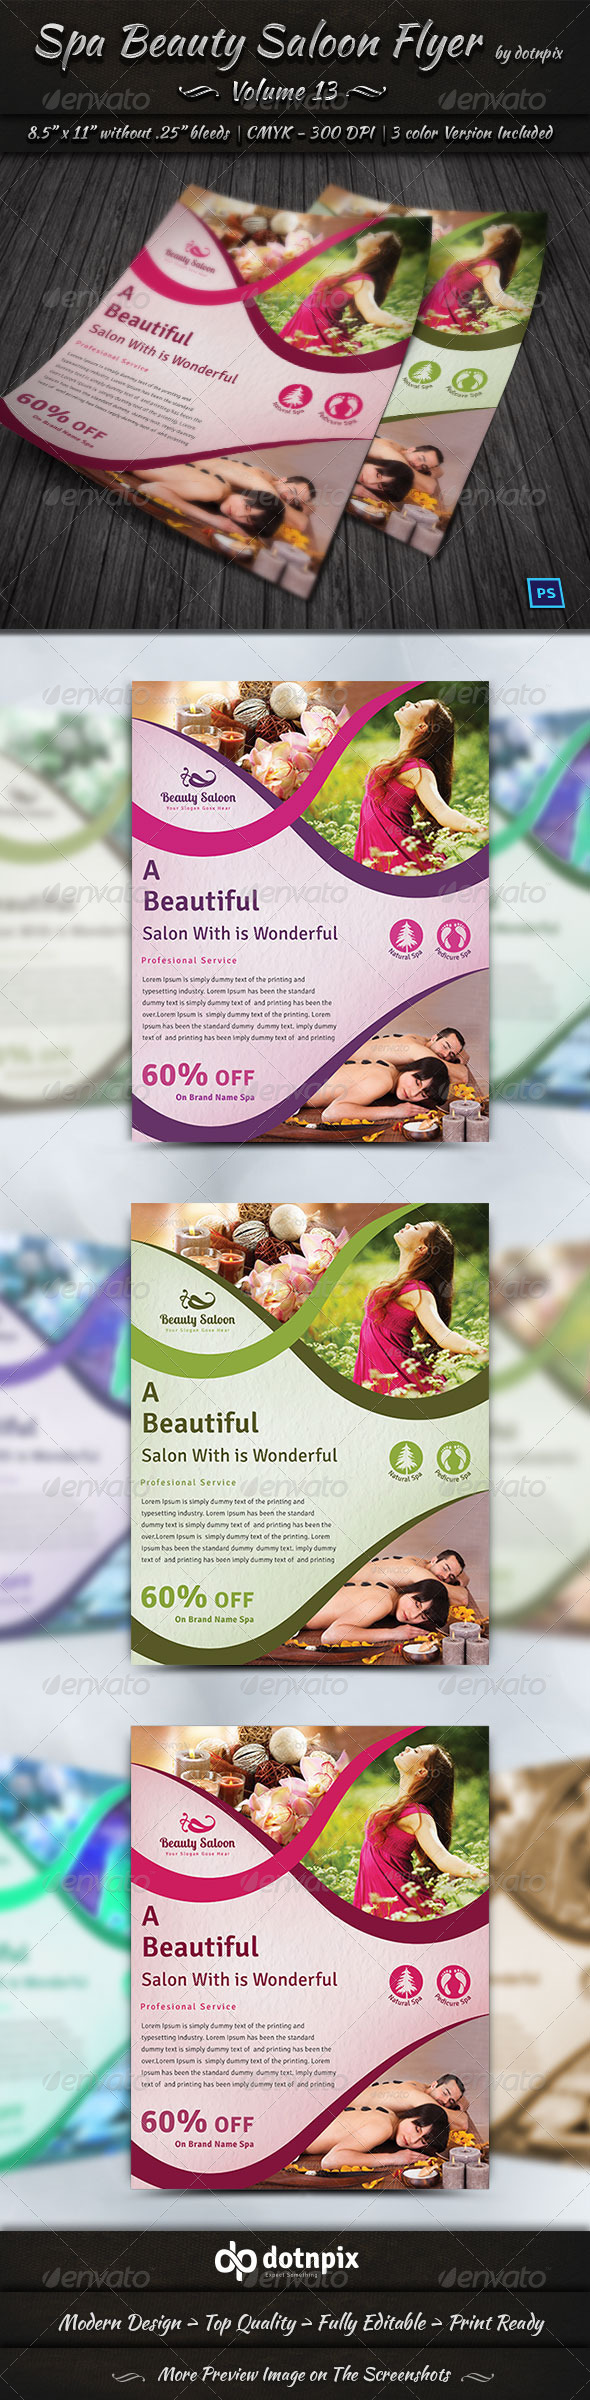 Spa & Beauty Saloon Flyer | Volume 13 - Print Templates